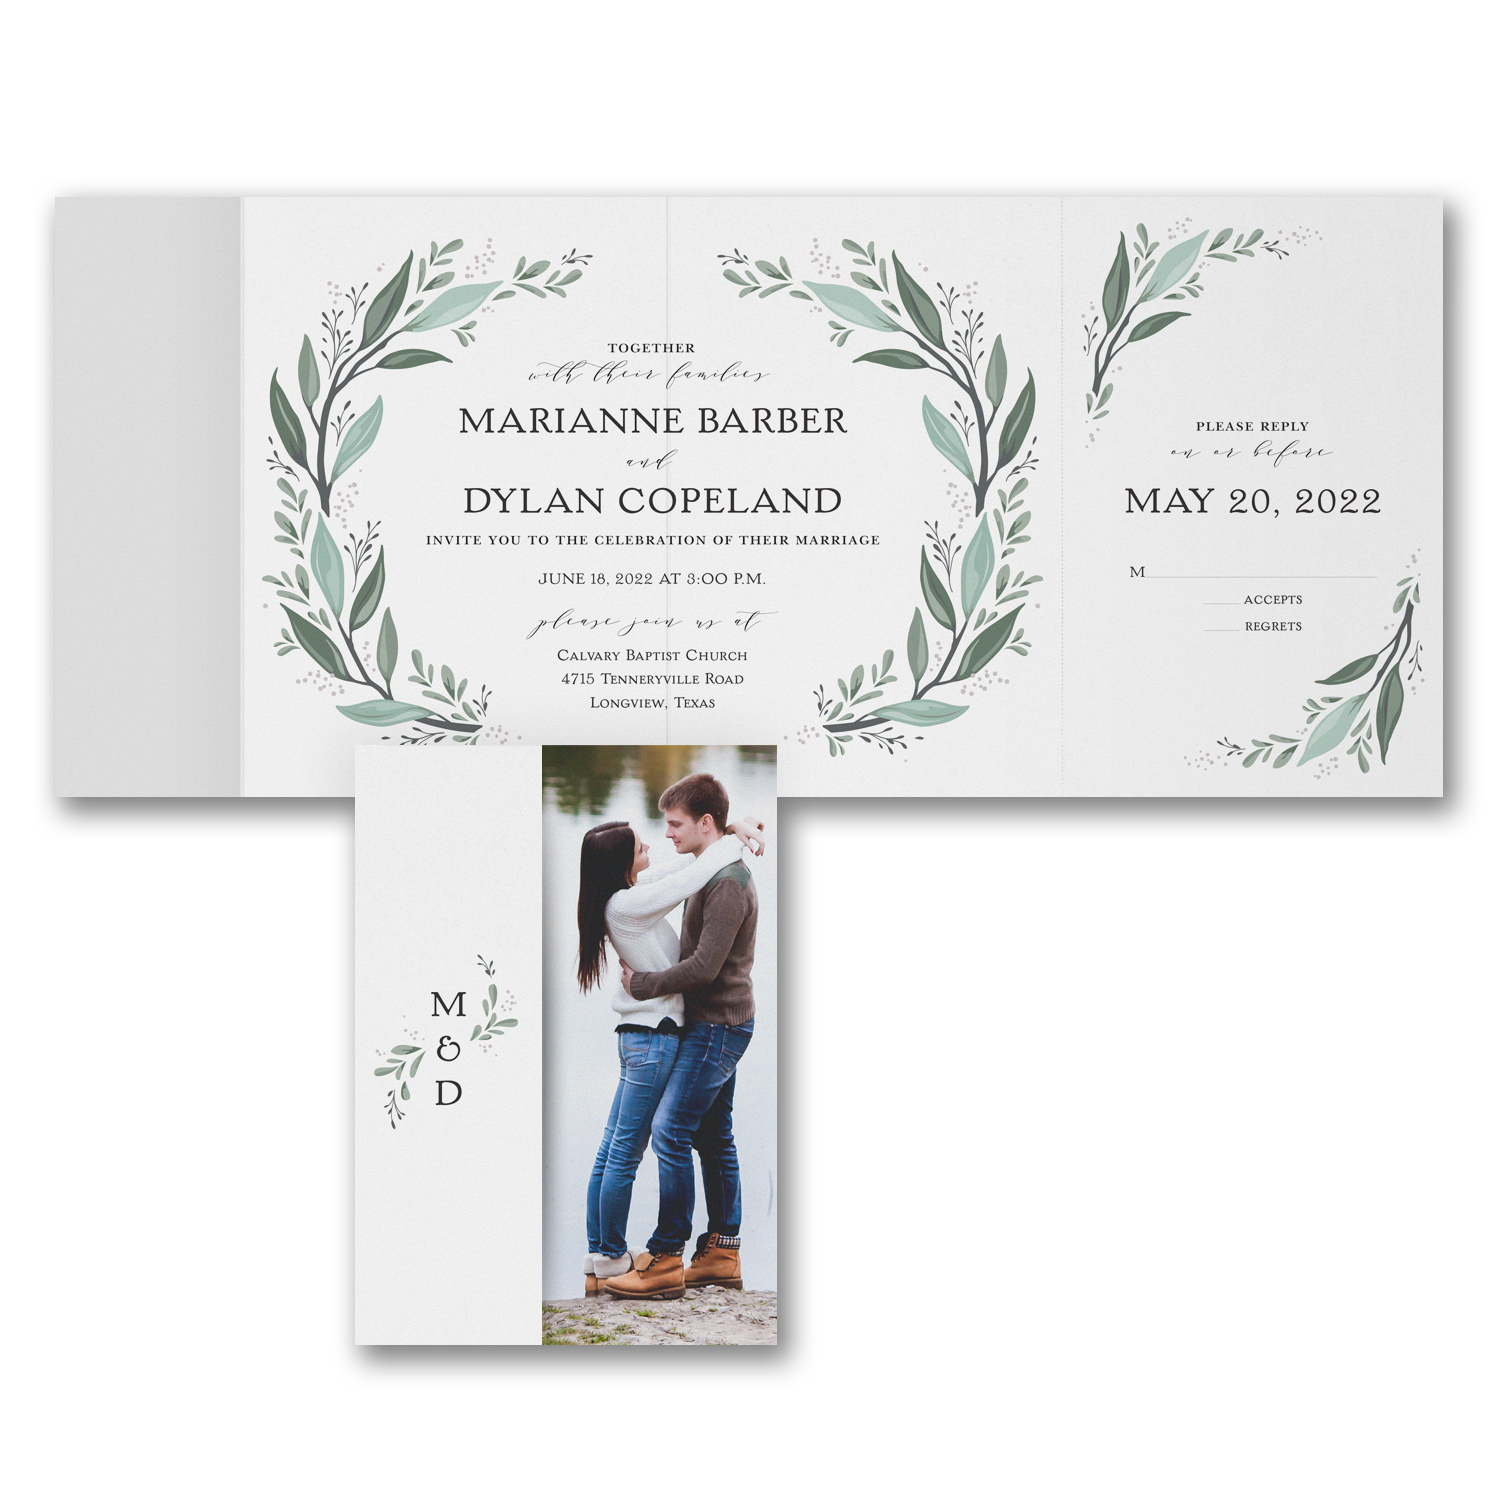 Custom printed wedding invitations, Save the Dates, and RSVP